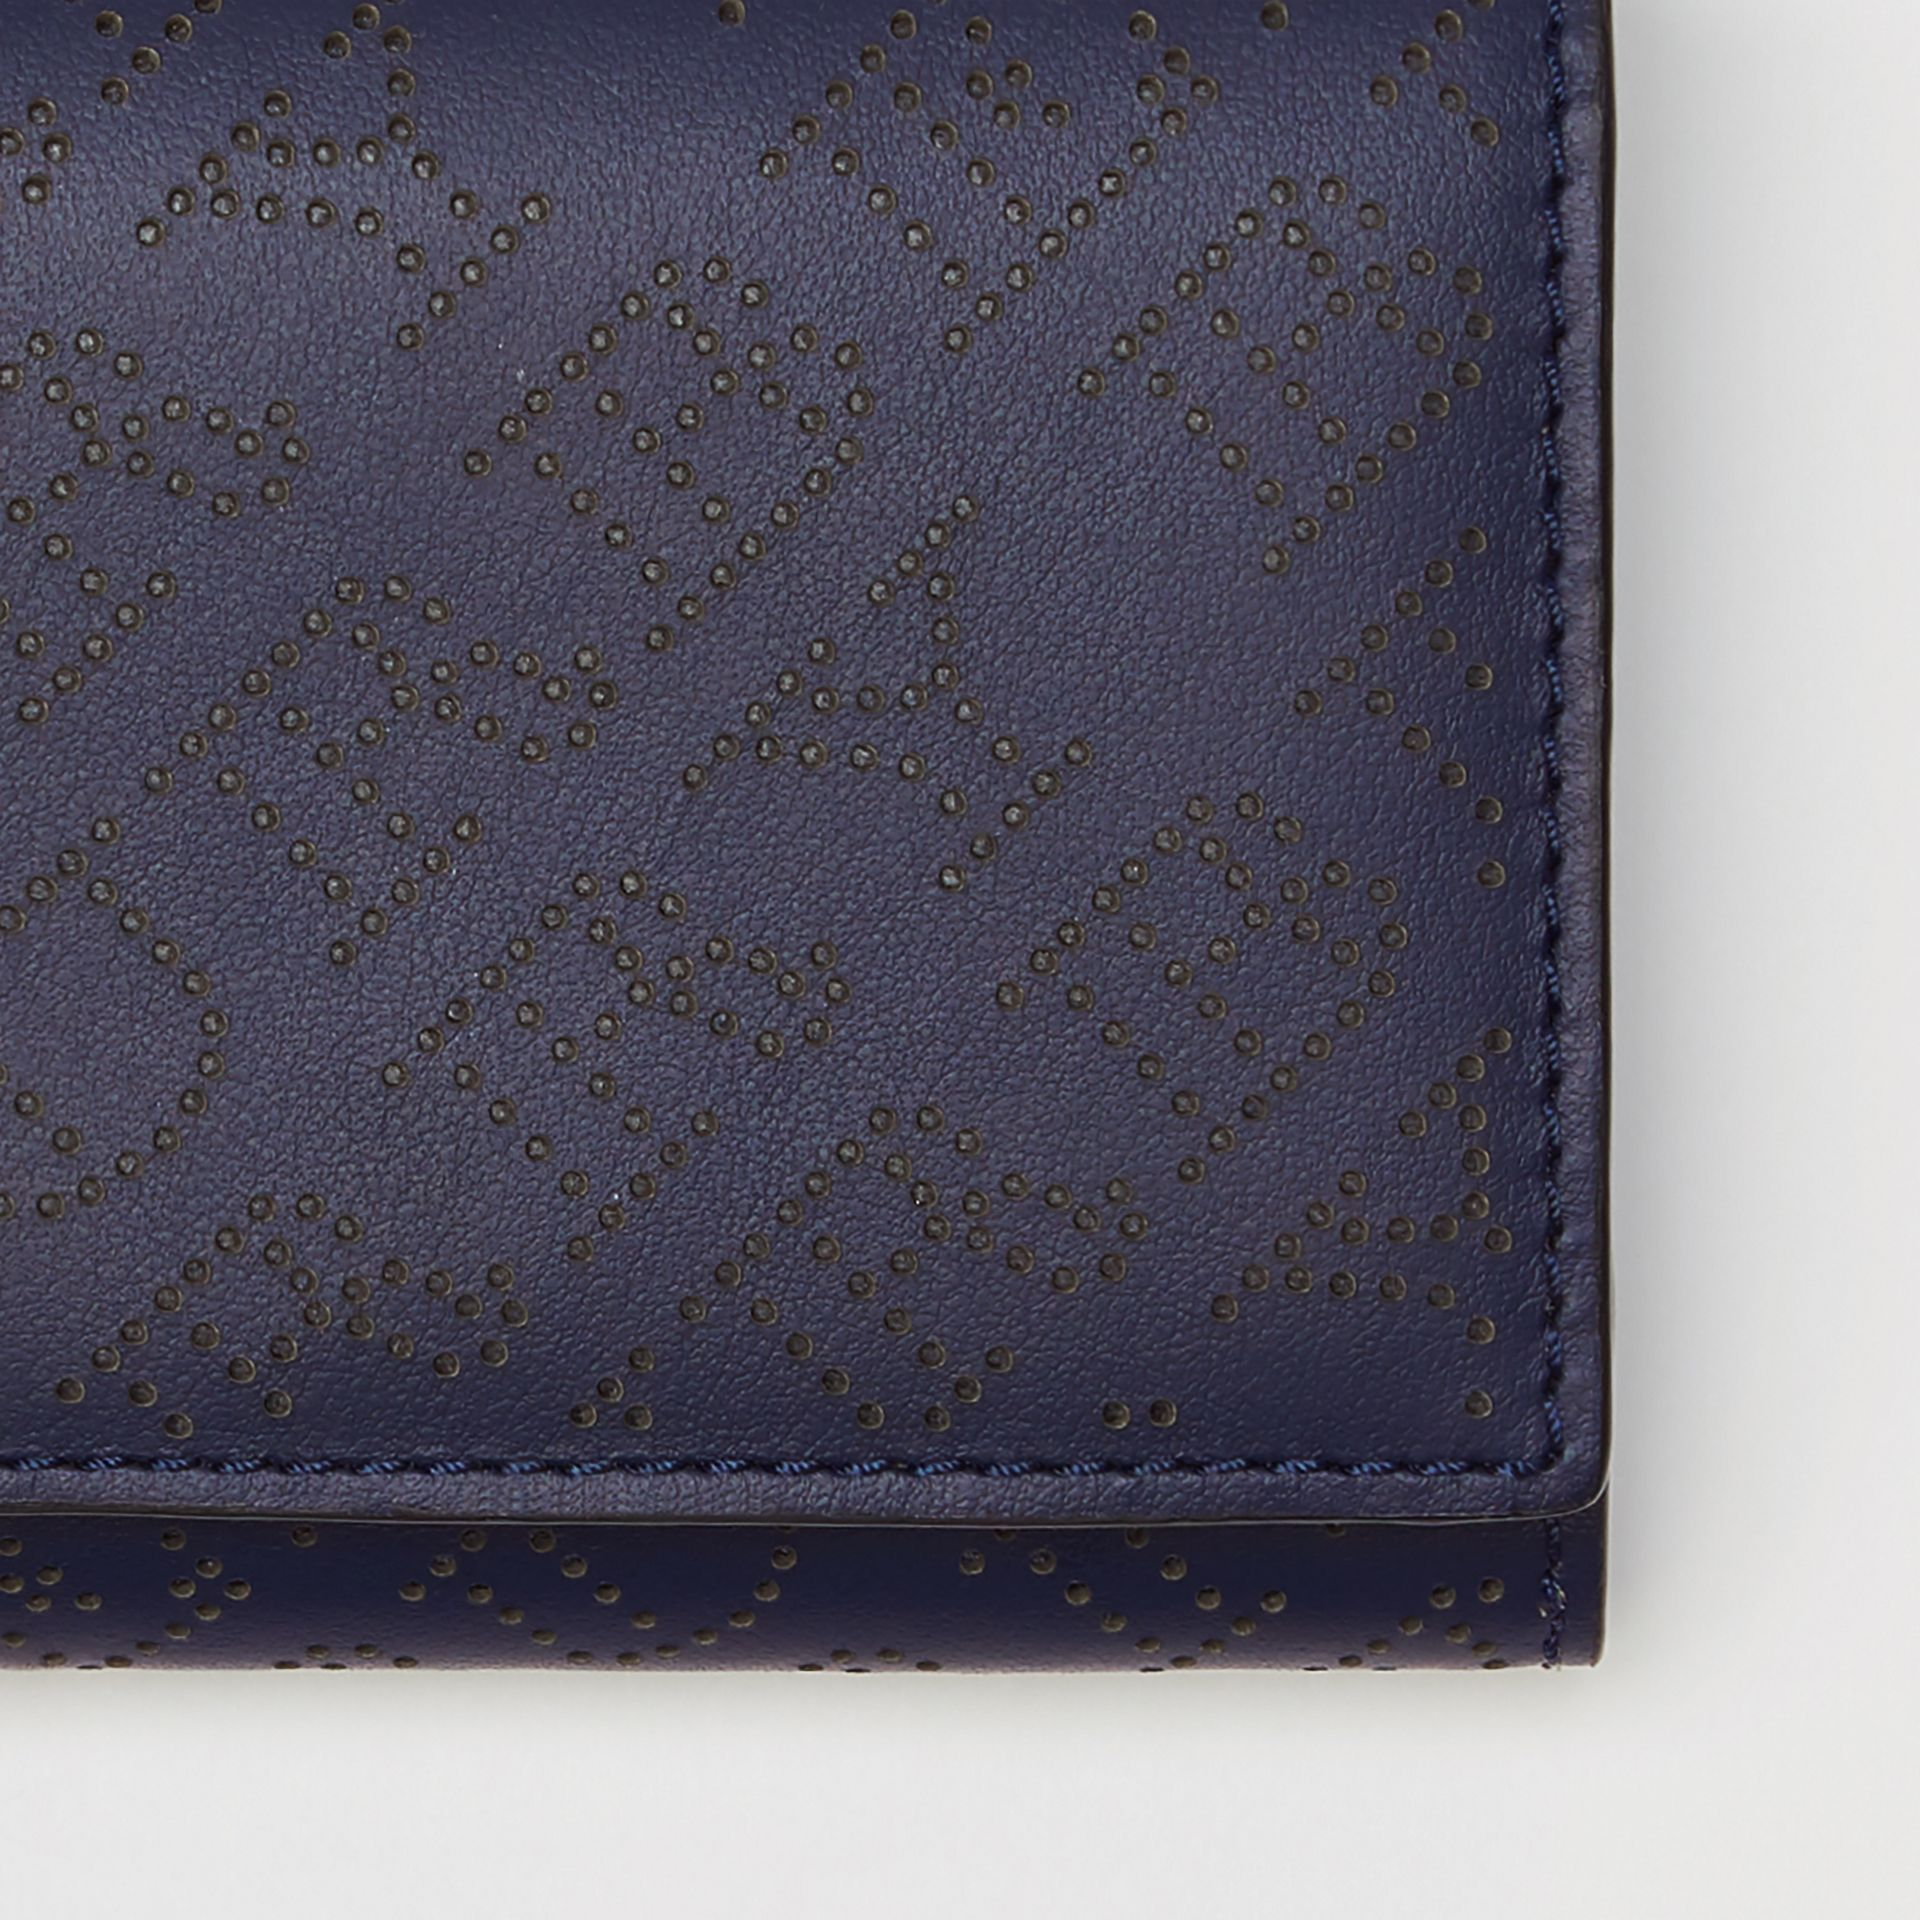 Small Perforated Logo Leather Wallet in Navy - Women | Burberry Canada - gallery image 1